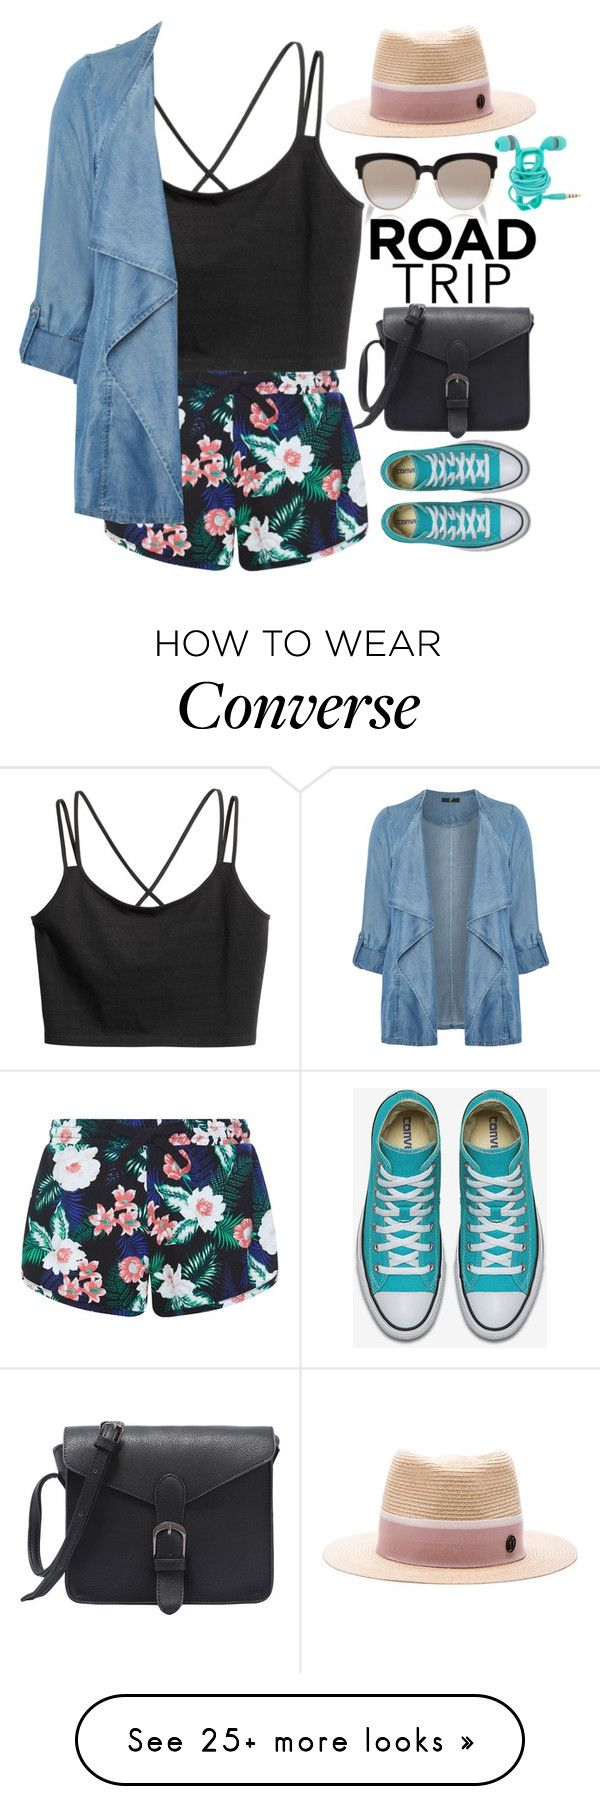 """""""Untitled #288"""" by xo-panda-xo on Polyvore featuring New Look, Evans, Christian Dior, Maison Michel, roadtrip and plus size clothing"""